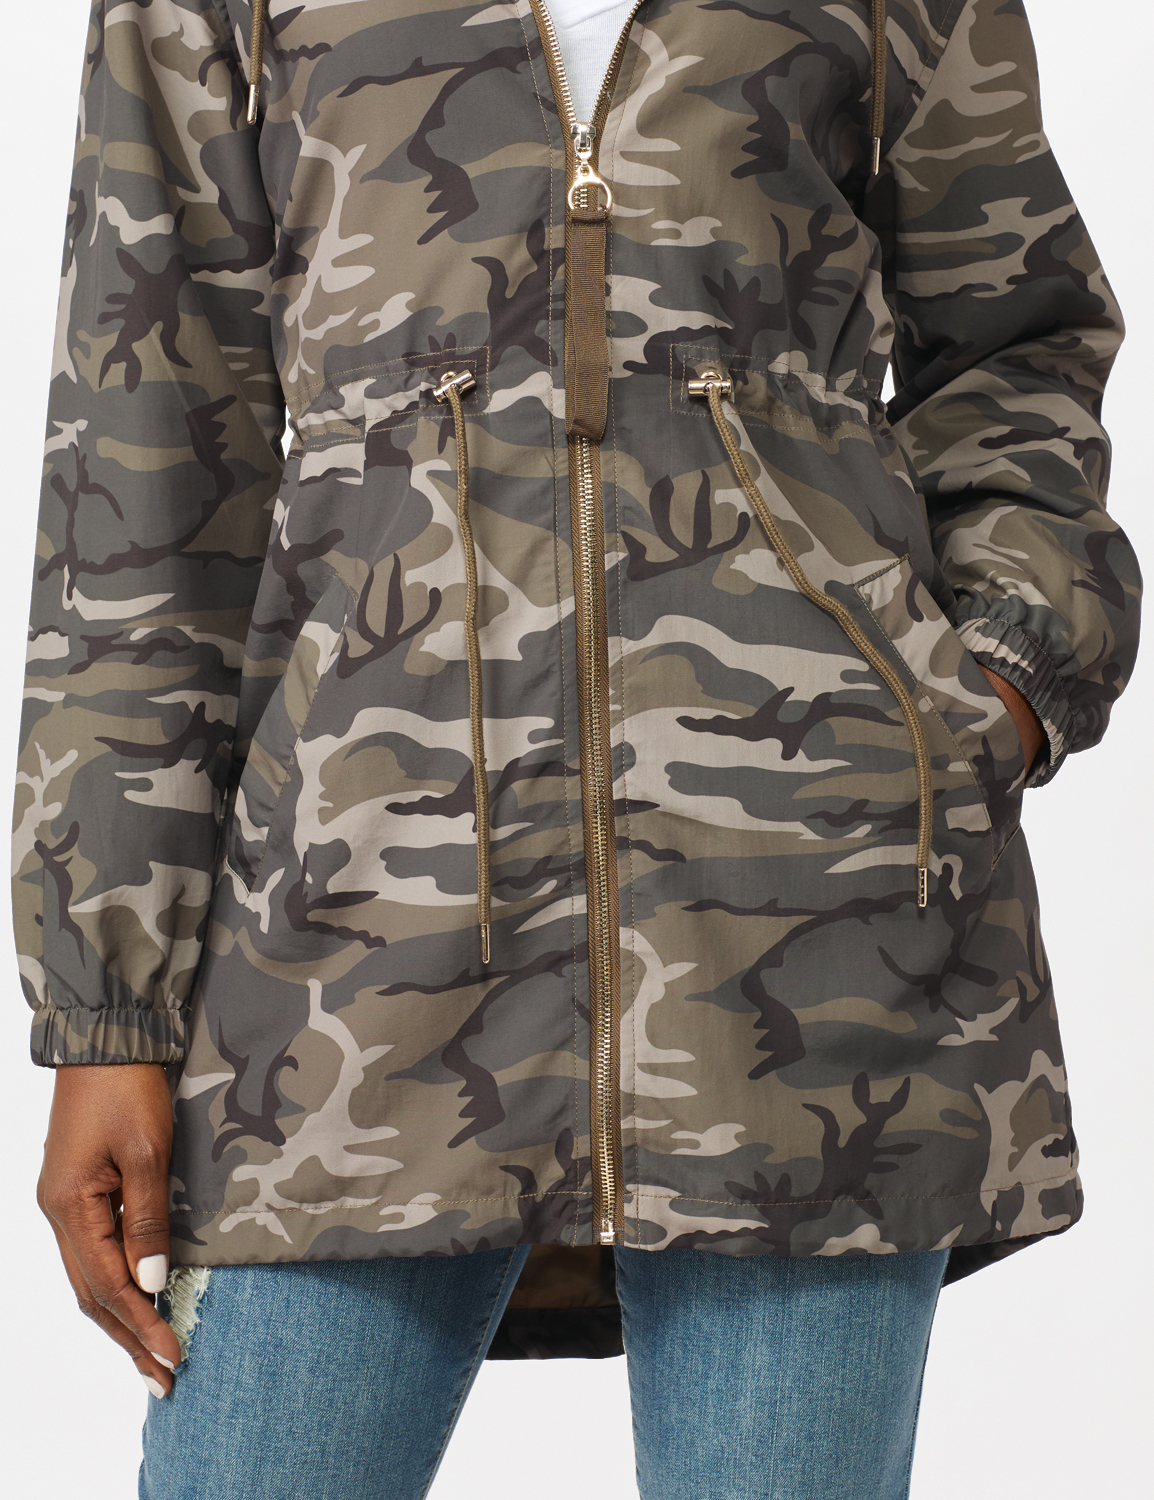 Dry Nylon Camo Zip Front Hooded Utility Jacket with Draw Cord - Olive - Alternate Image